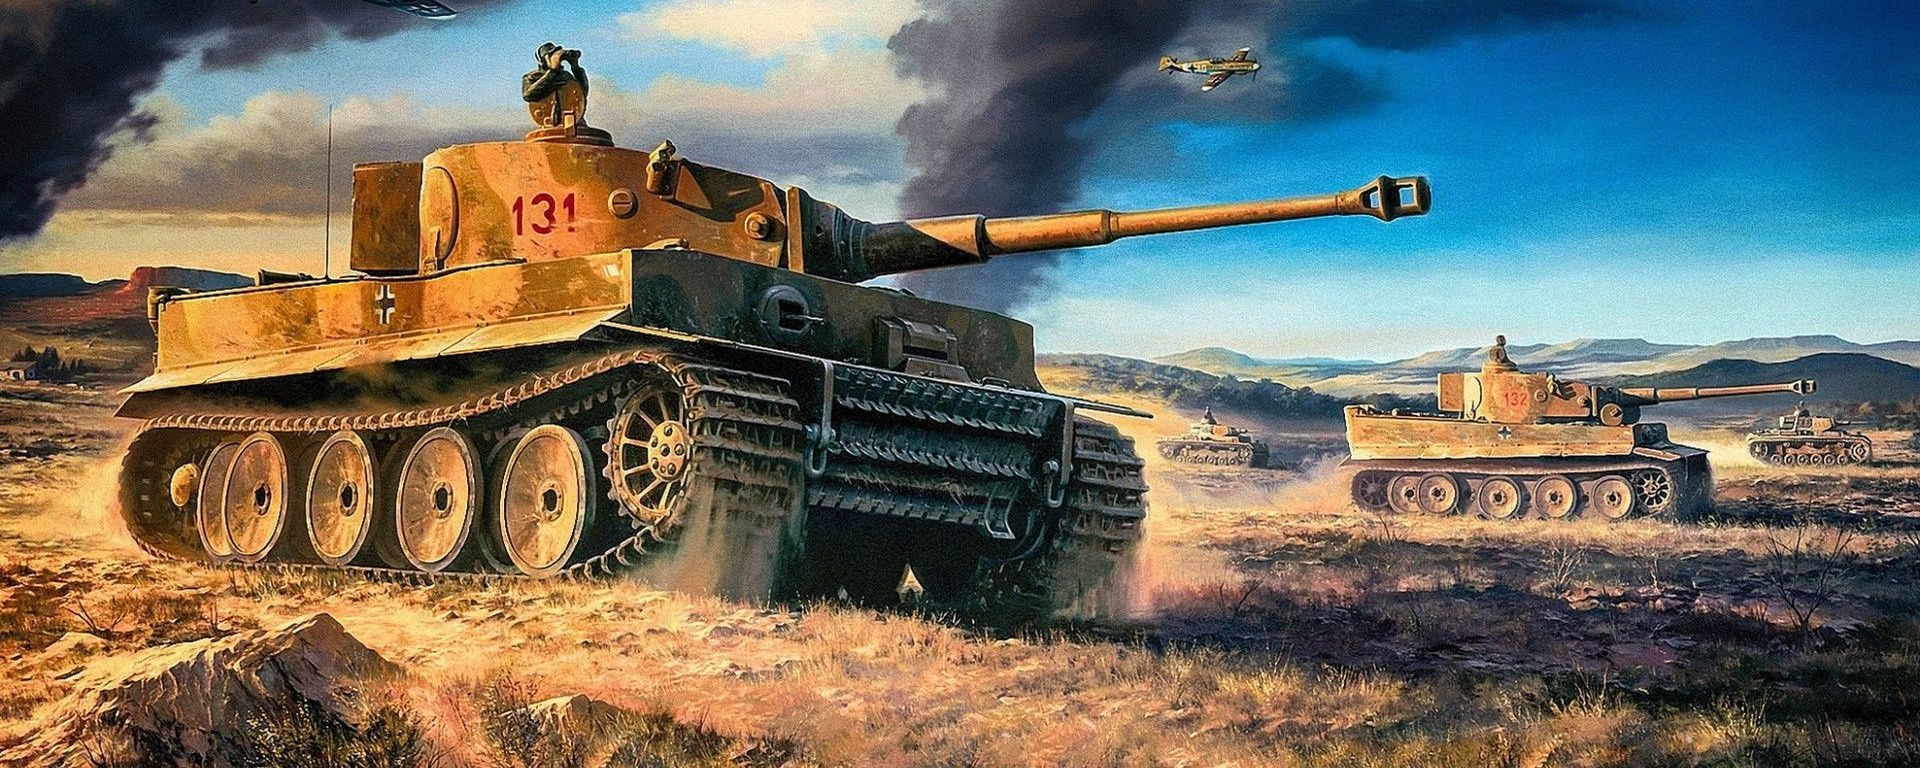 Tiger I Ii The Most Feared Tanks Of Ww2 Battle Machines